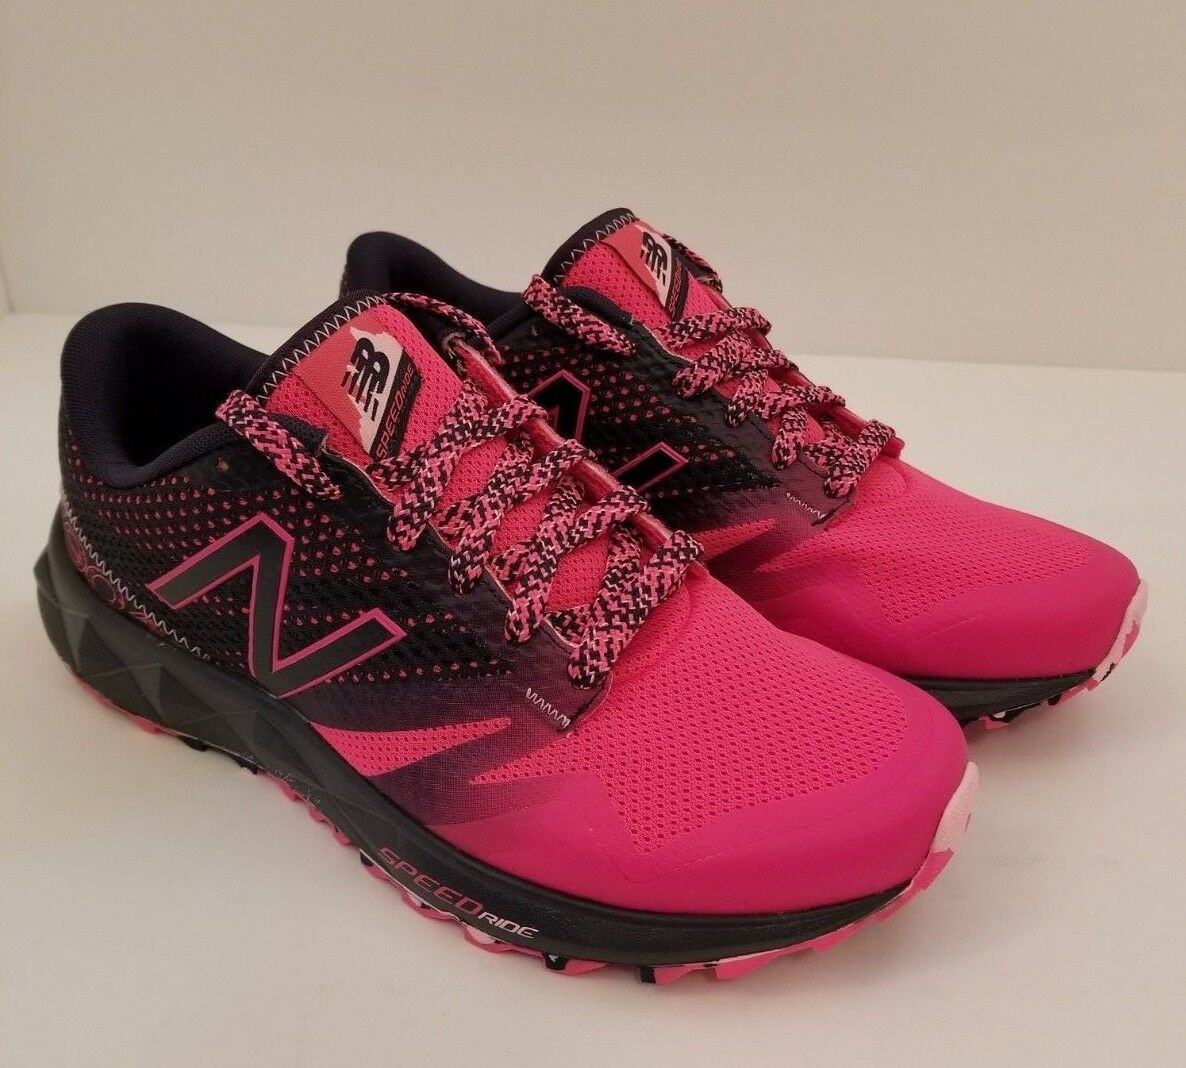 New Balance NB 690AT All Terrain Pink Navy Trail Running Shoes Donna Size 6.5